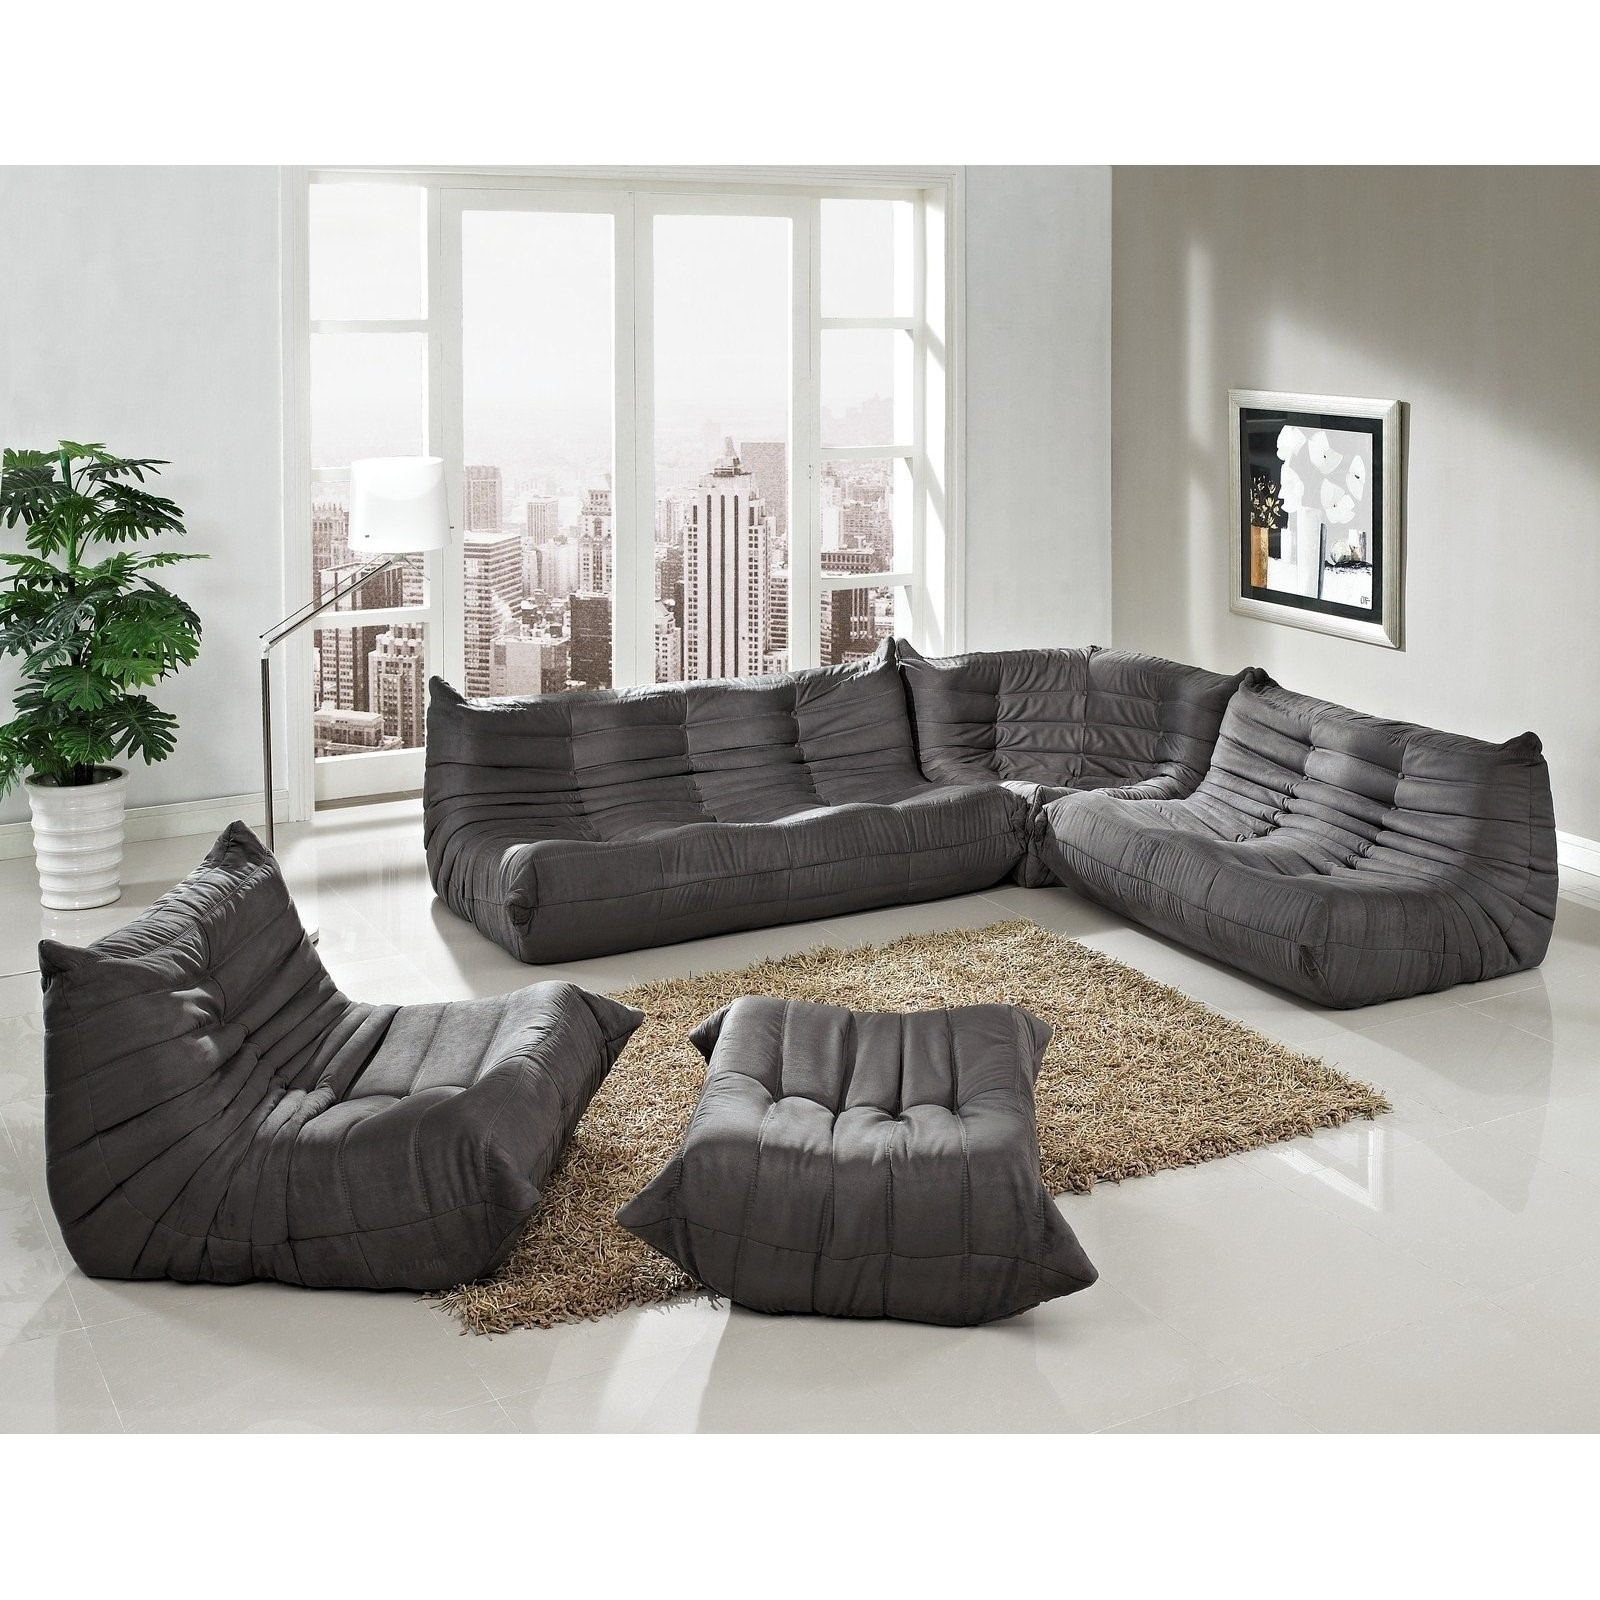 12 ideas of 10 foot sectional sofa for 8 ft sectional sofa